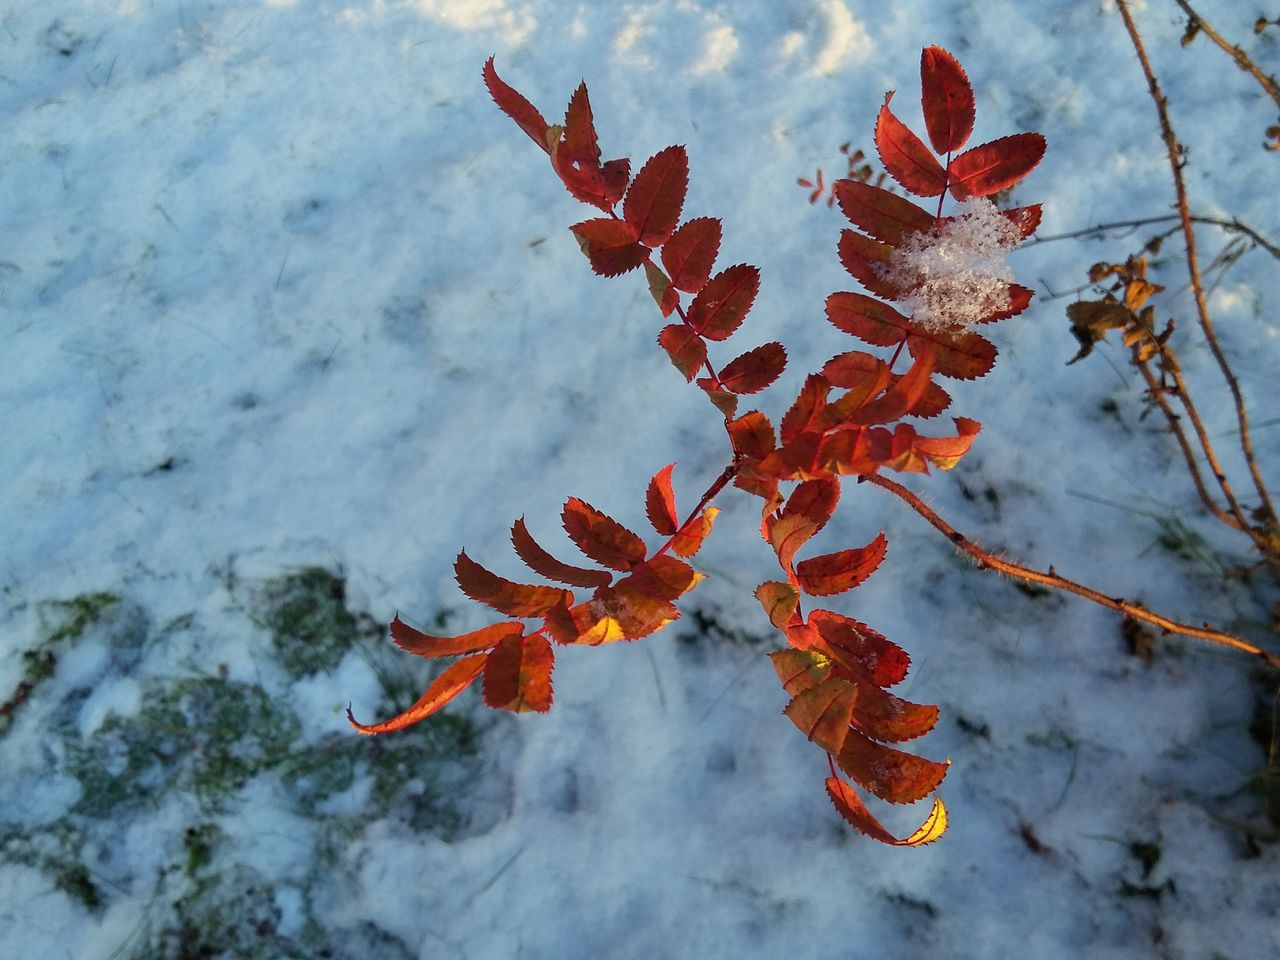 nature, orange color, no people, day, cold temperature, winter, outdoors, beauty in nature, leaf, autumn, close-up, snow, water